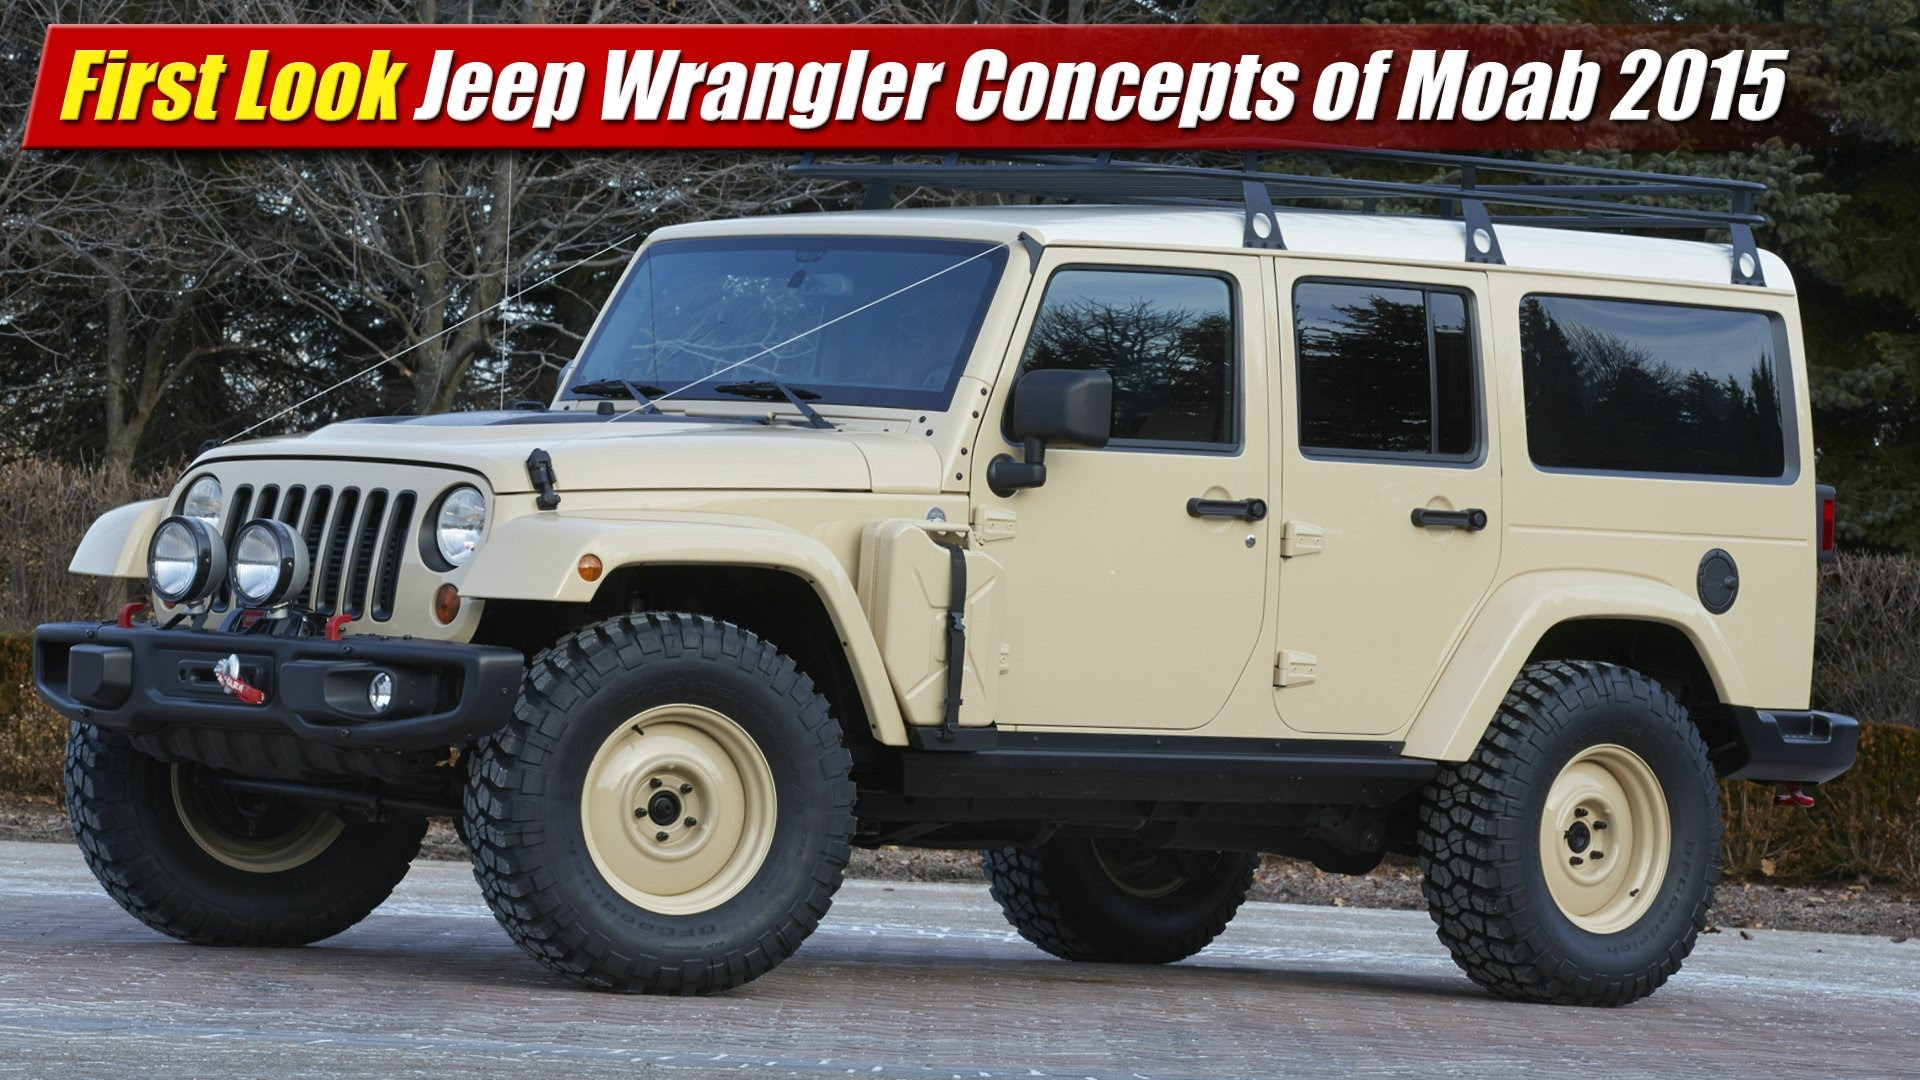 First Look: Jeep Wrangler Concepts of Moab 2015 ...